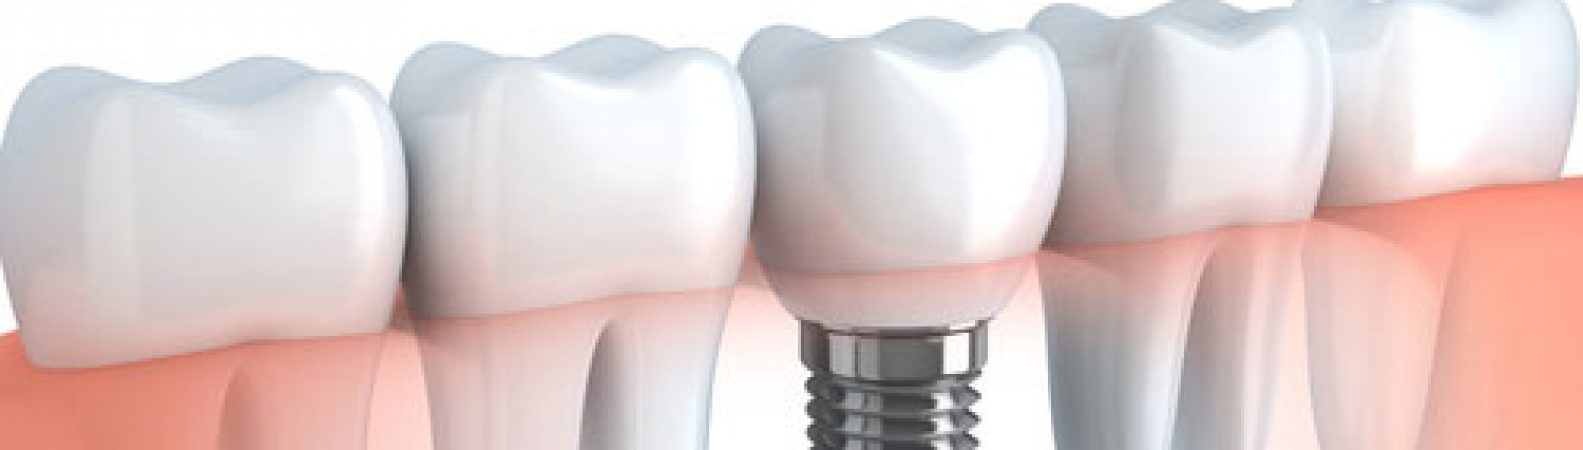 More Good News About Dental Implants [BLOG]